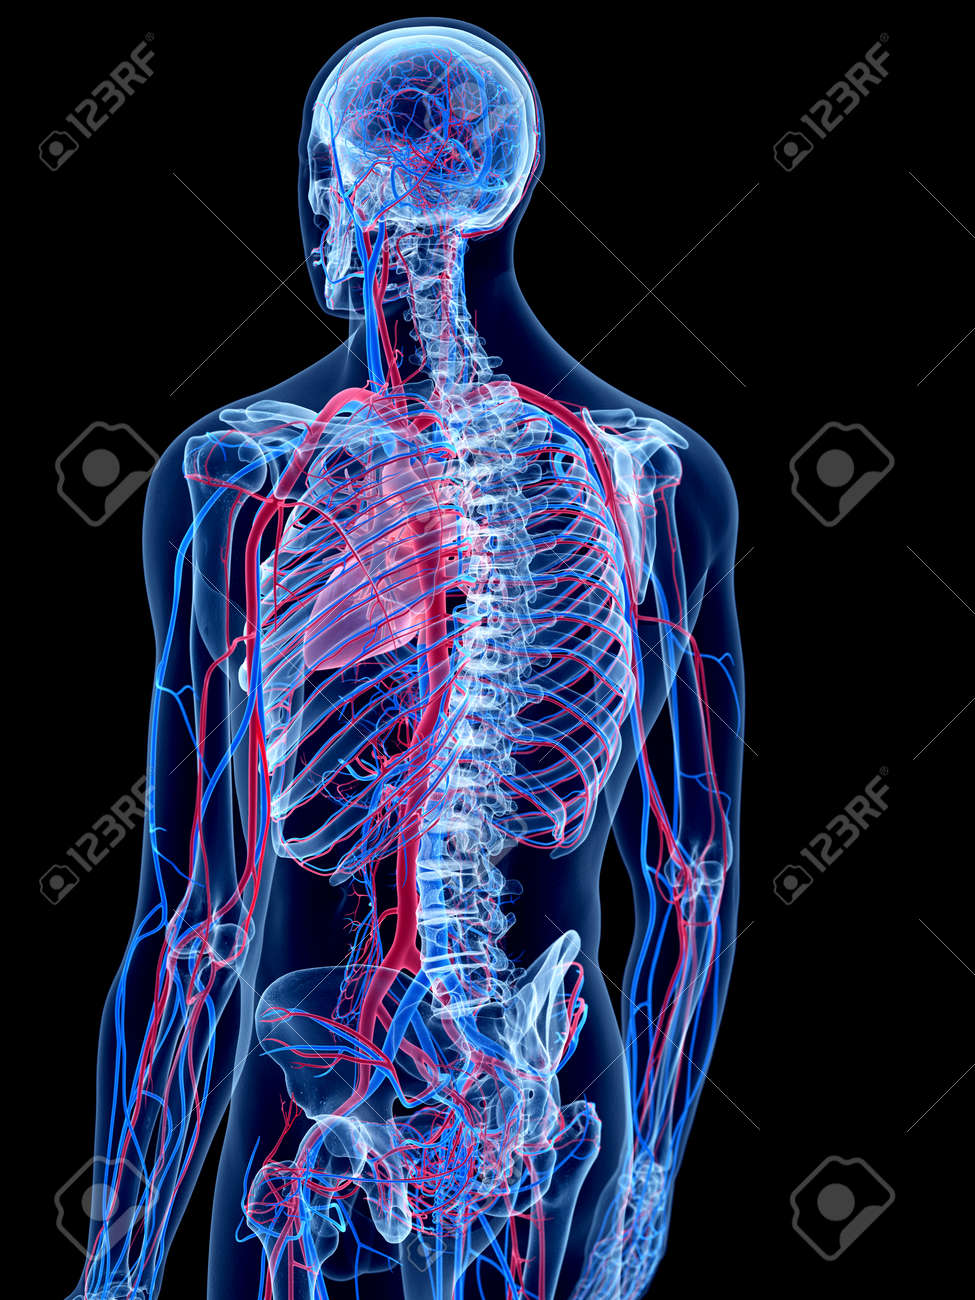 The Human Vascular System Stock Photo Picture And Royalty Free